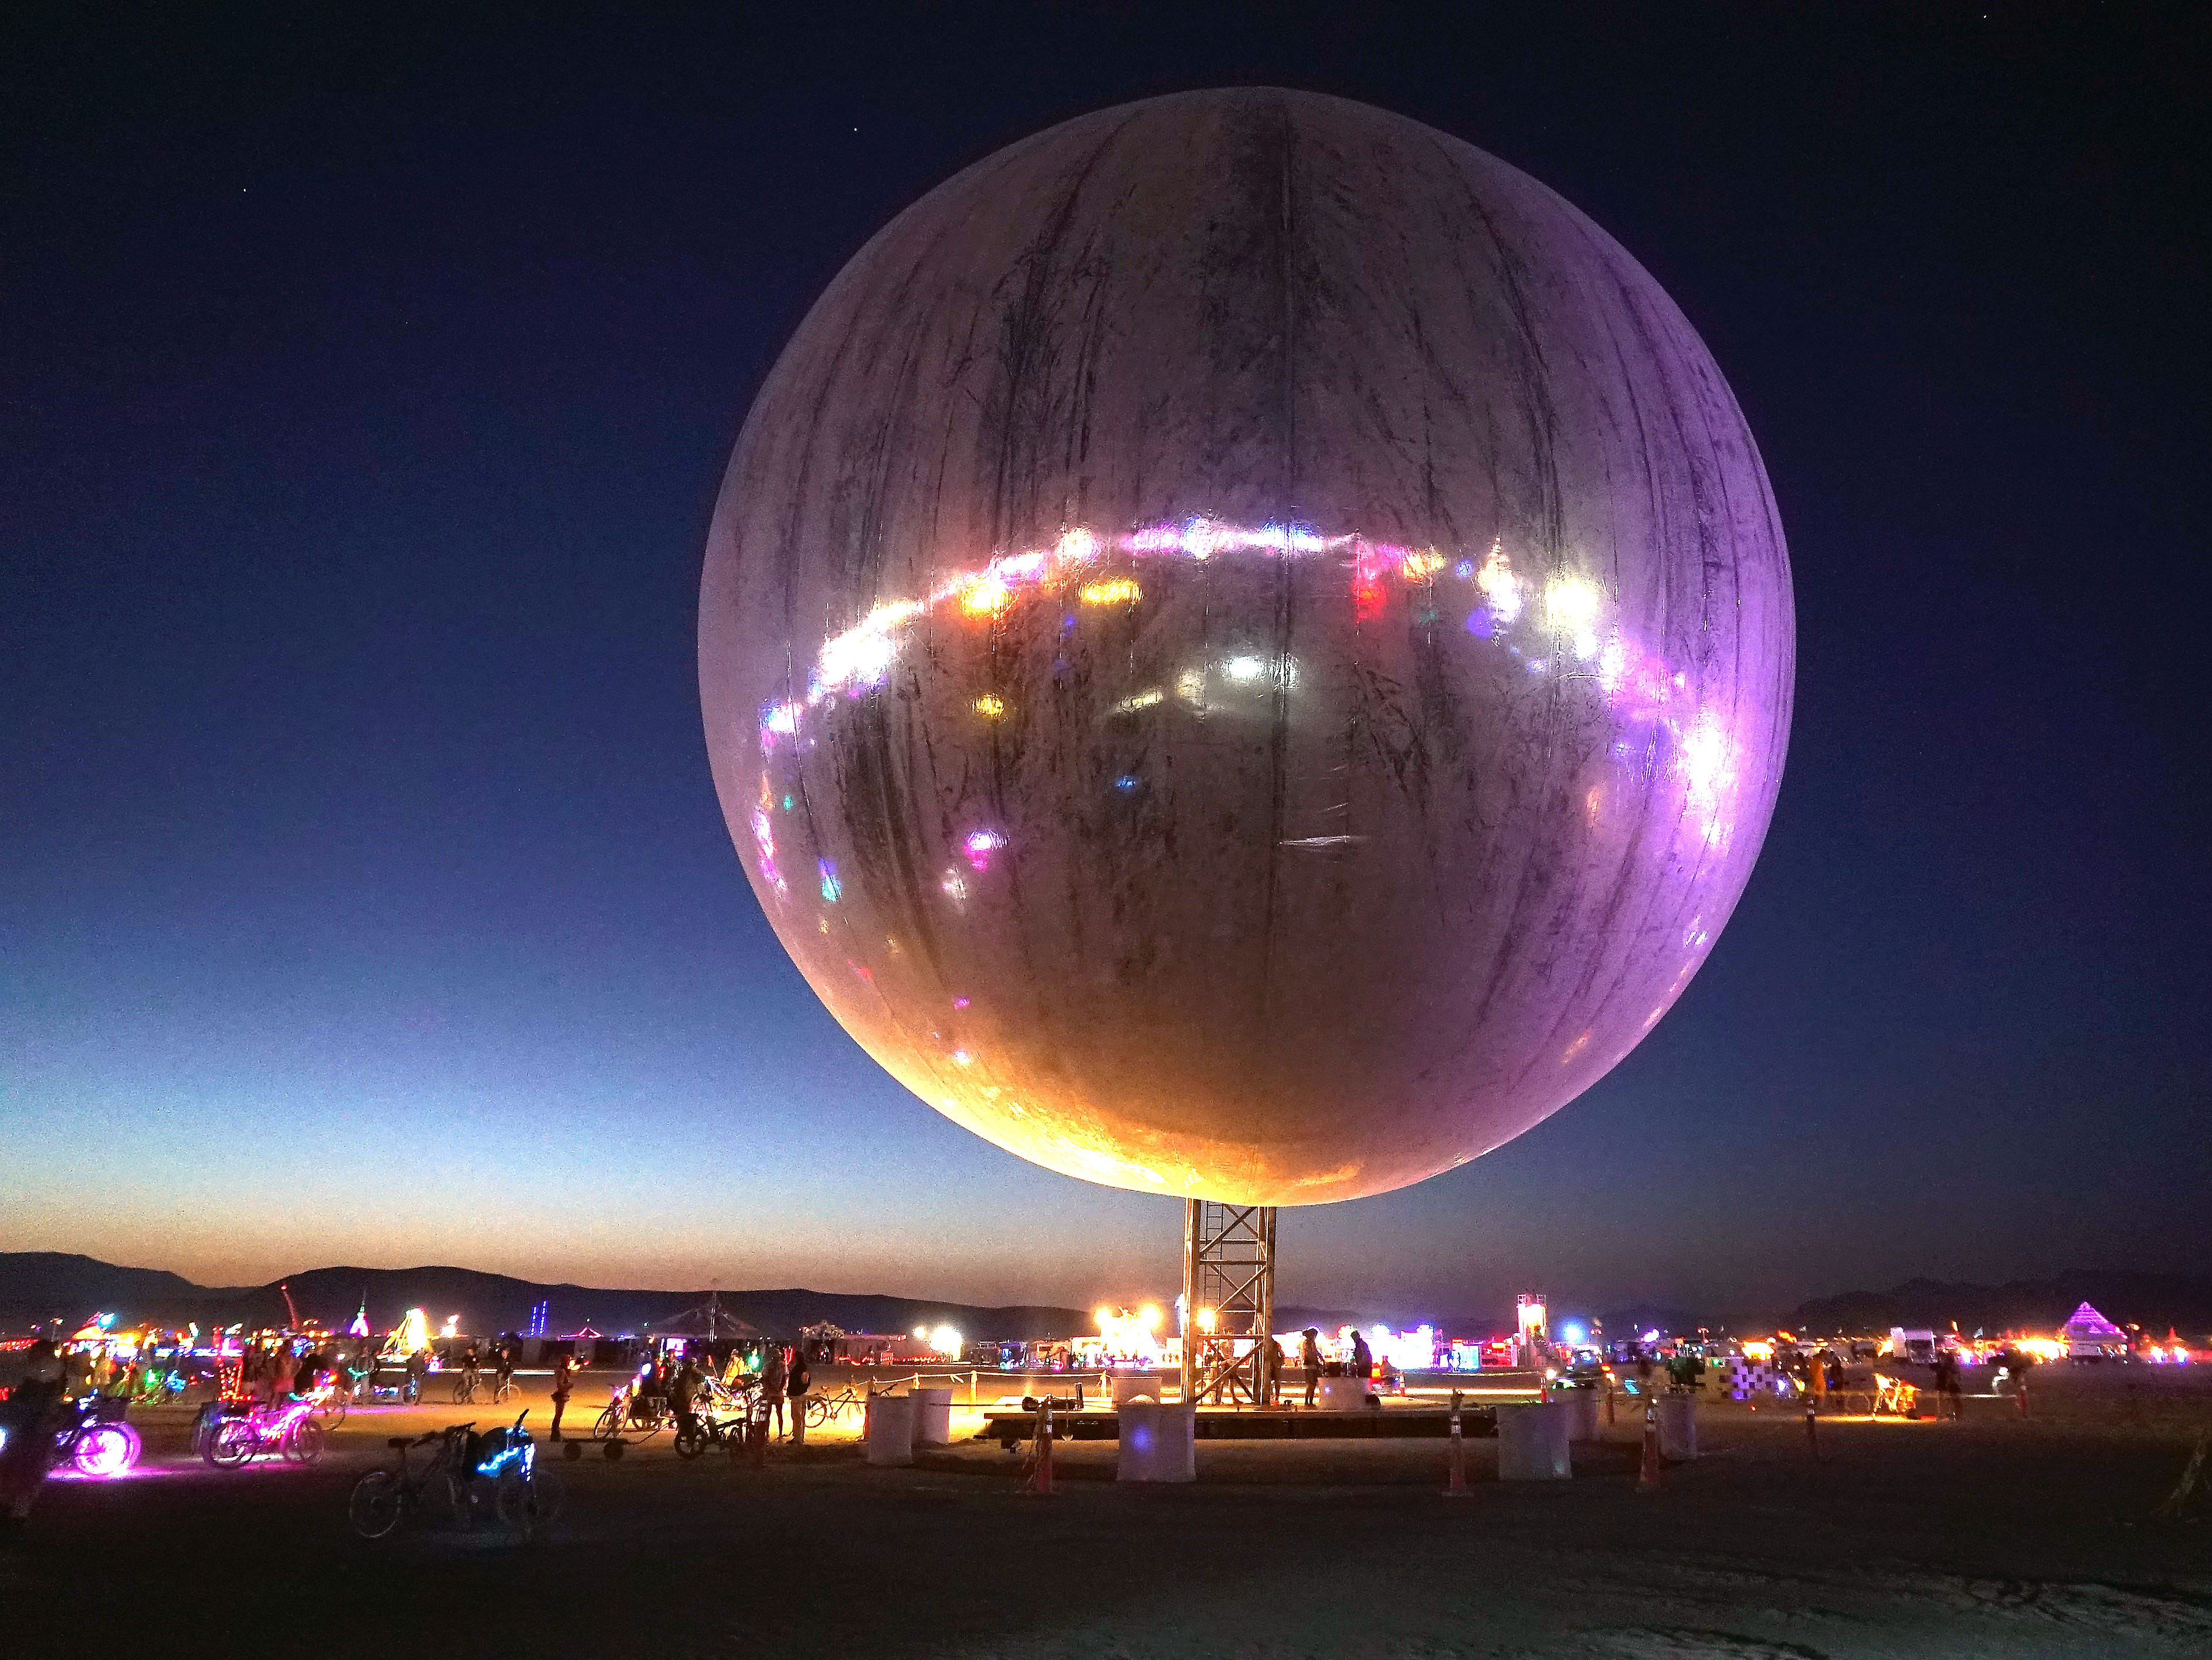 An inflatable sphere covered in reflective material hangs over the dusty playa of Burning Man, reflecting back the neon and LED lights scattered around the area.